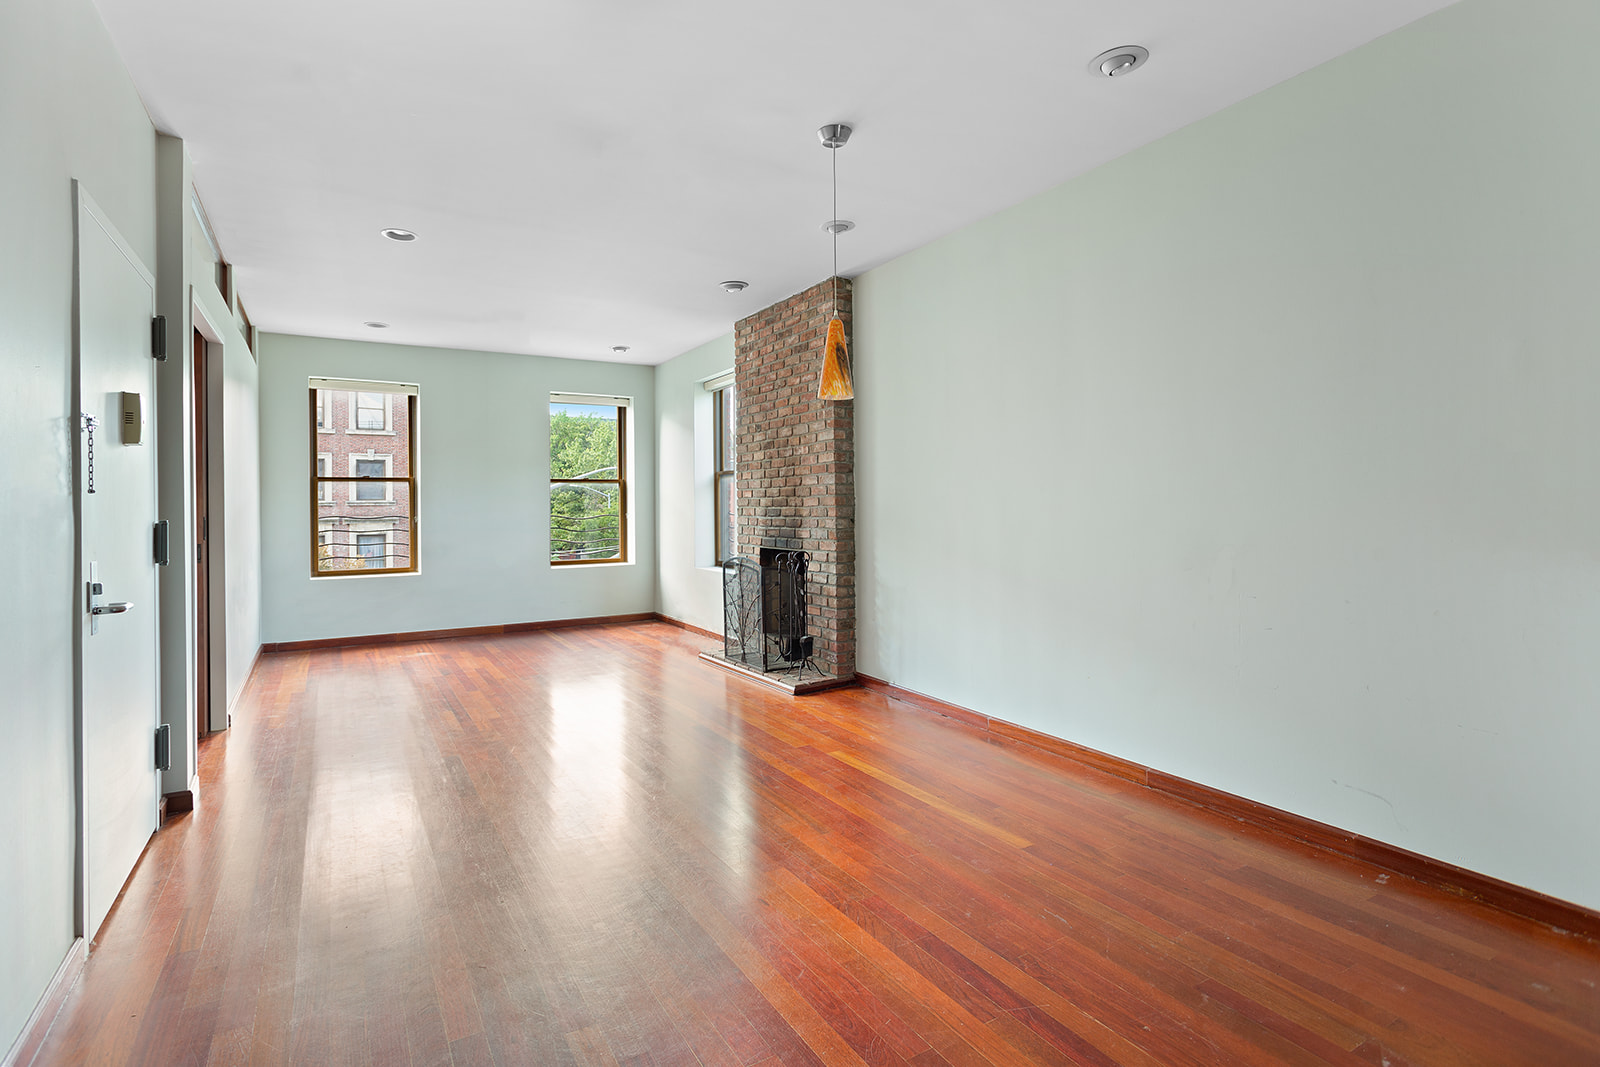 Living large on Fifth Avenue (and 130th Street)!This handsome, oversized one-bedroom apartment combines the open feeling of loft living with the warmth of a traditional residence. Over 1,200 square feet, this generously proportioned unit offers a large master bedroom with a bay window, exposed brick, and a spa bathroom ensuite. A large living area with a wood-burning fireplace is perfect for entertaining with a 6' x 12' adjacent room that could be used as a home office, media room, or nursery. The open, windowed kitchen has stainless steel appliances, excellent cabinets and counter space. A guest bath and full-sized washer and dryer are located off the curving hallway past the kitchen, and central heat and A/C assure your comfort.2119 Fifth Avenue is a corner brownstone built originally in 1890 and now totally renovated. It is convenient to WholeFoods, Red Rooster, a lively restaurant row on Lenox Avenue, and historic, tree-lined Astor Row. Also, it is located for easy access to transportation, including the 2, 3, or 4, 5, 6 subways and the M60 bus to LGA, and Metro North at 125th Street. Pets are welcome!